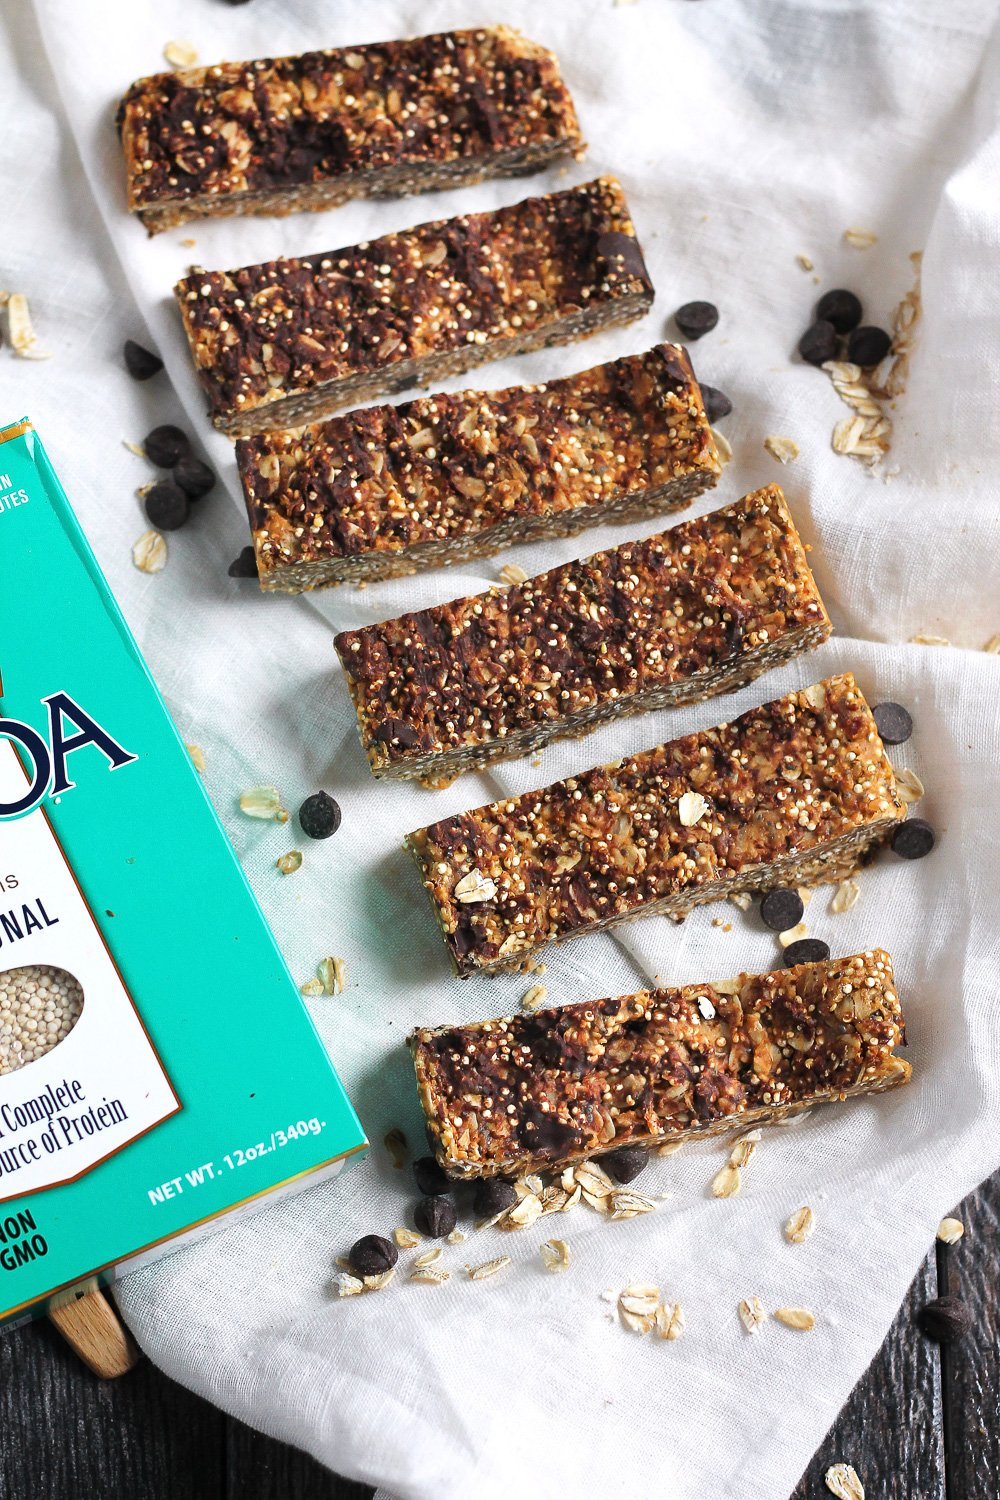 row on quinoa granola bars with box of quinoa